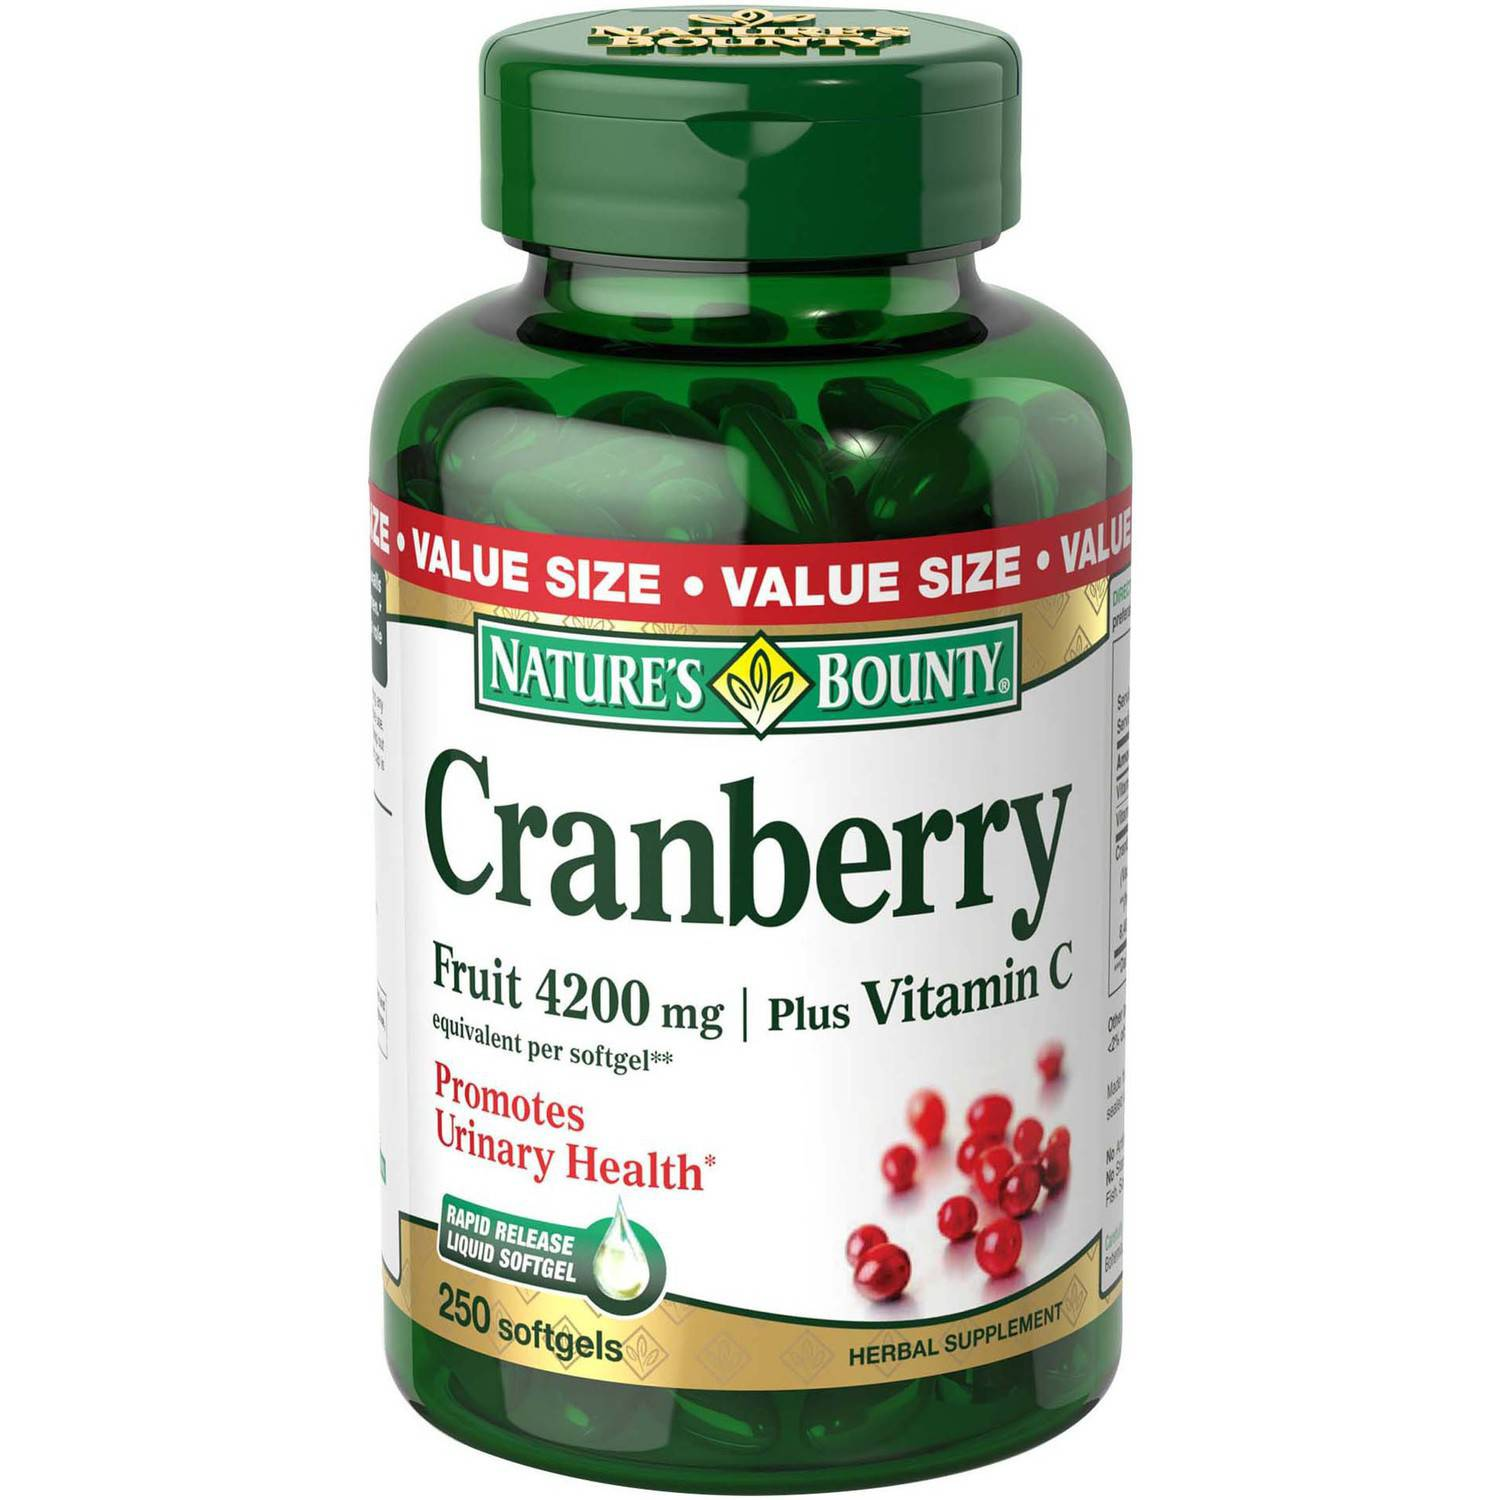 Nature's Bounty Cranberry Fruit plus Vitamin C Herbal Supplement Softgels, 4200mg, 250 count